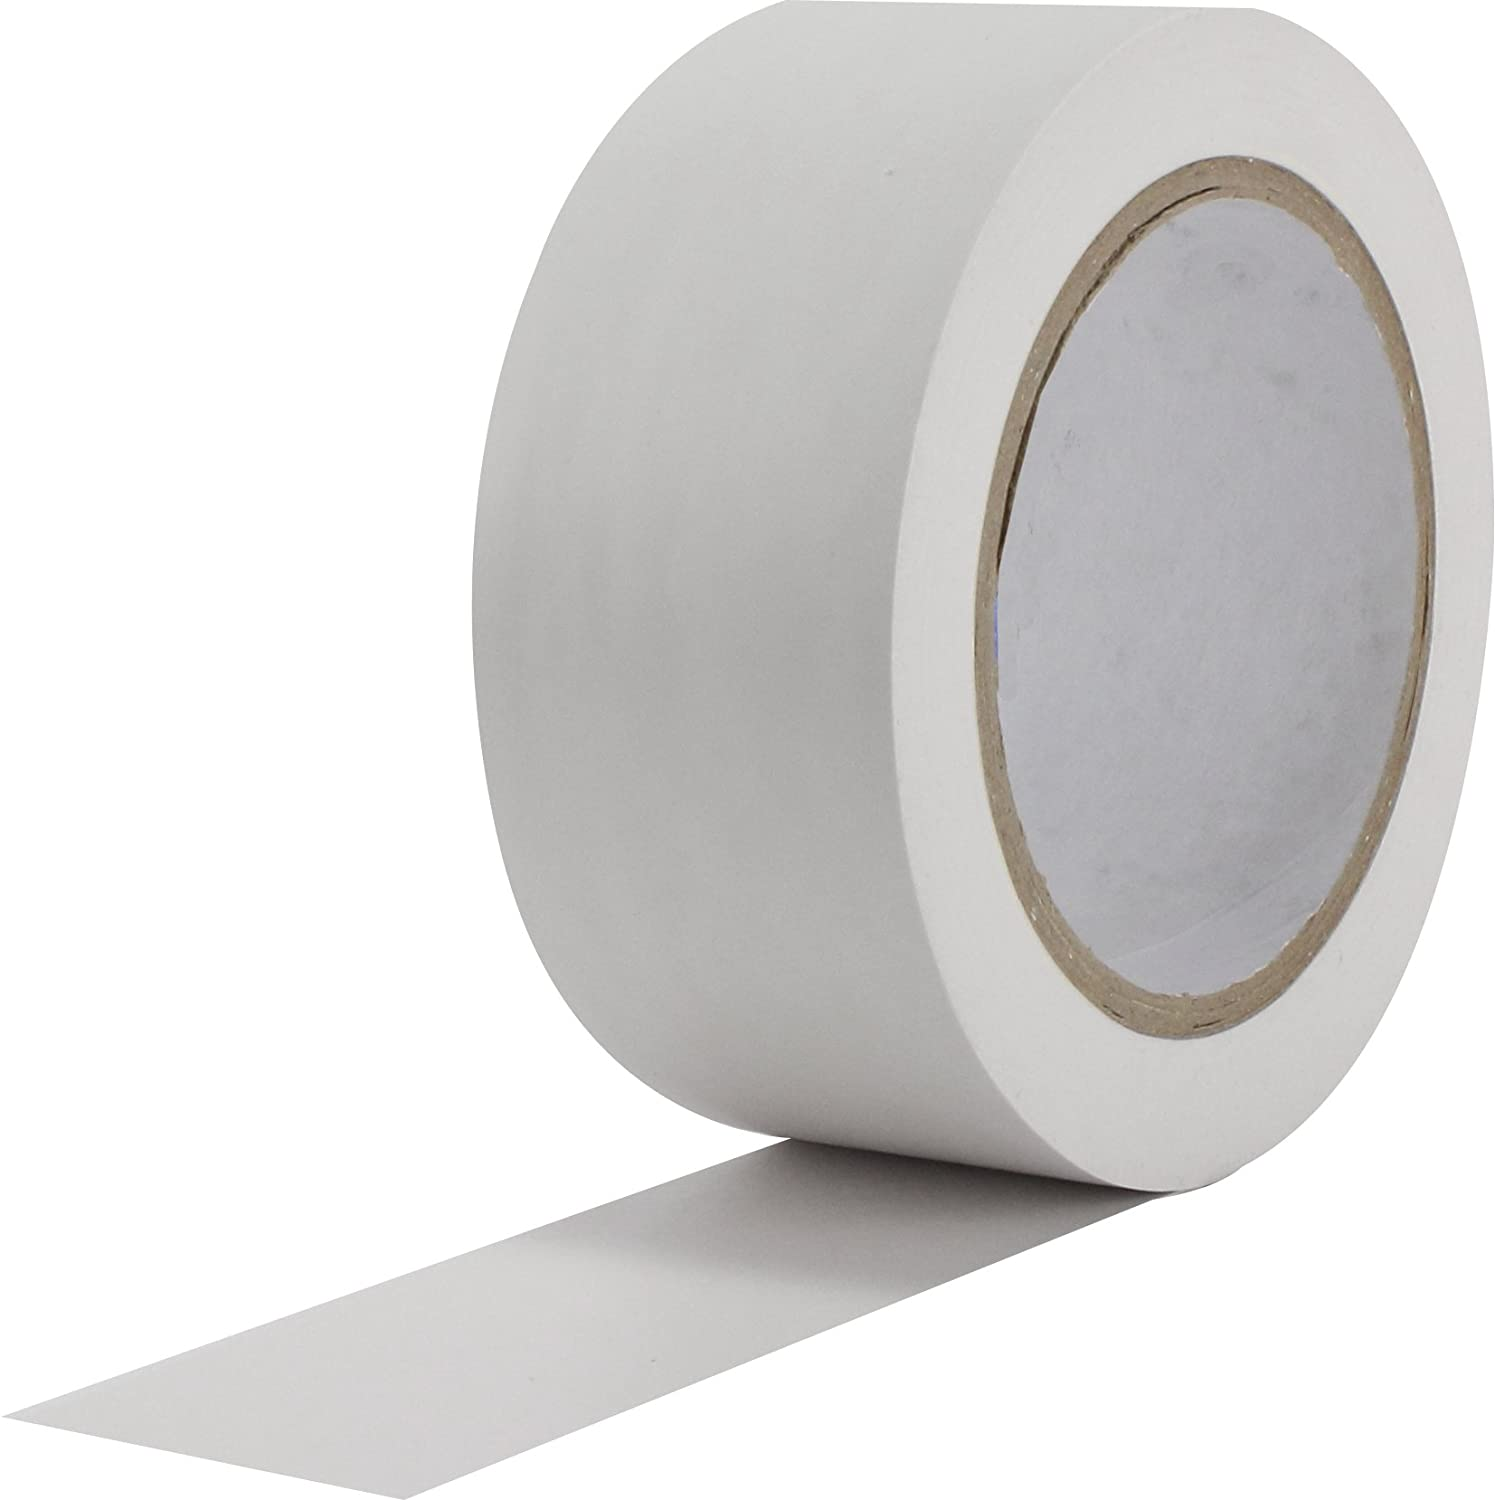 ProTapes Pro 50 Premium Vinyl Safety Marking and Dance Floor Splicing Tape, 6 Mils Thick, 36 Yds Length X 3' Width, White (Pack of 1) 36 Yds Length X 3 Width ProTapes & Specialties 50-6-3x36-W